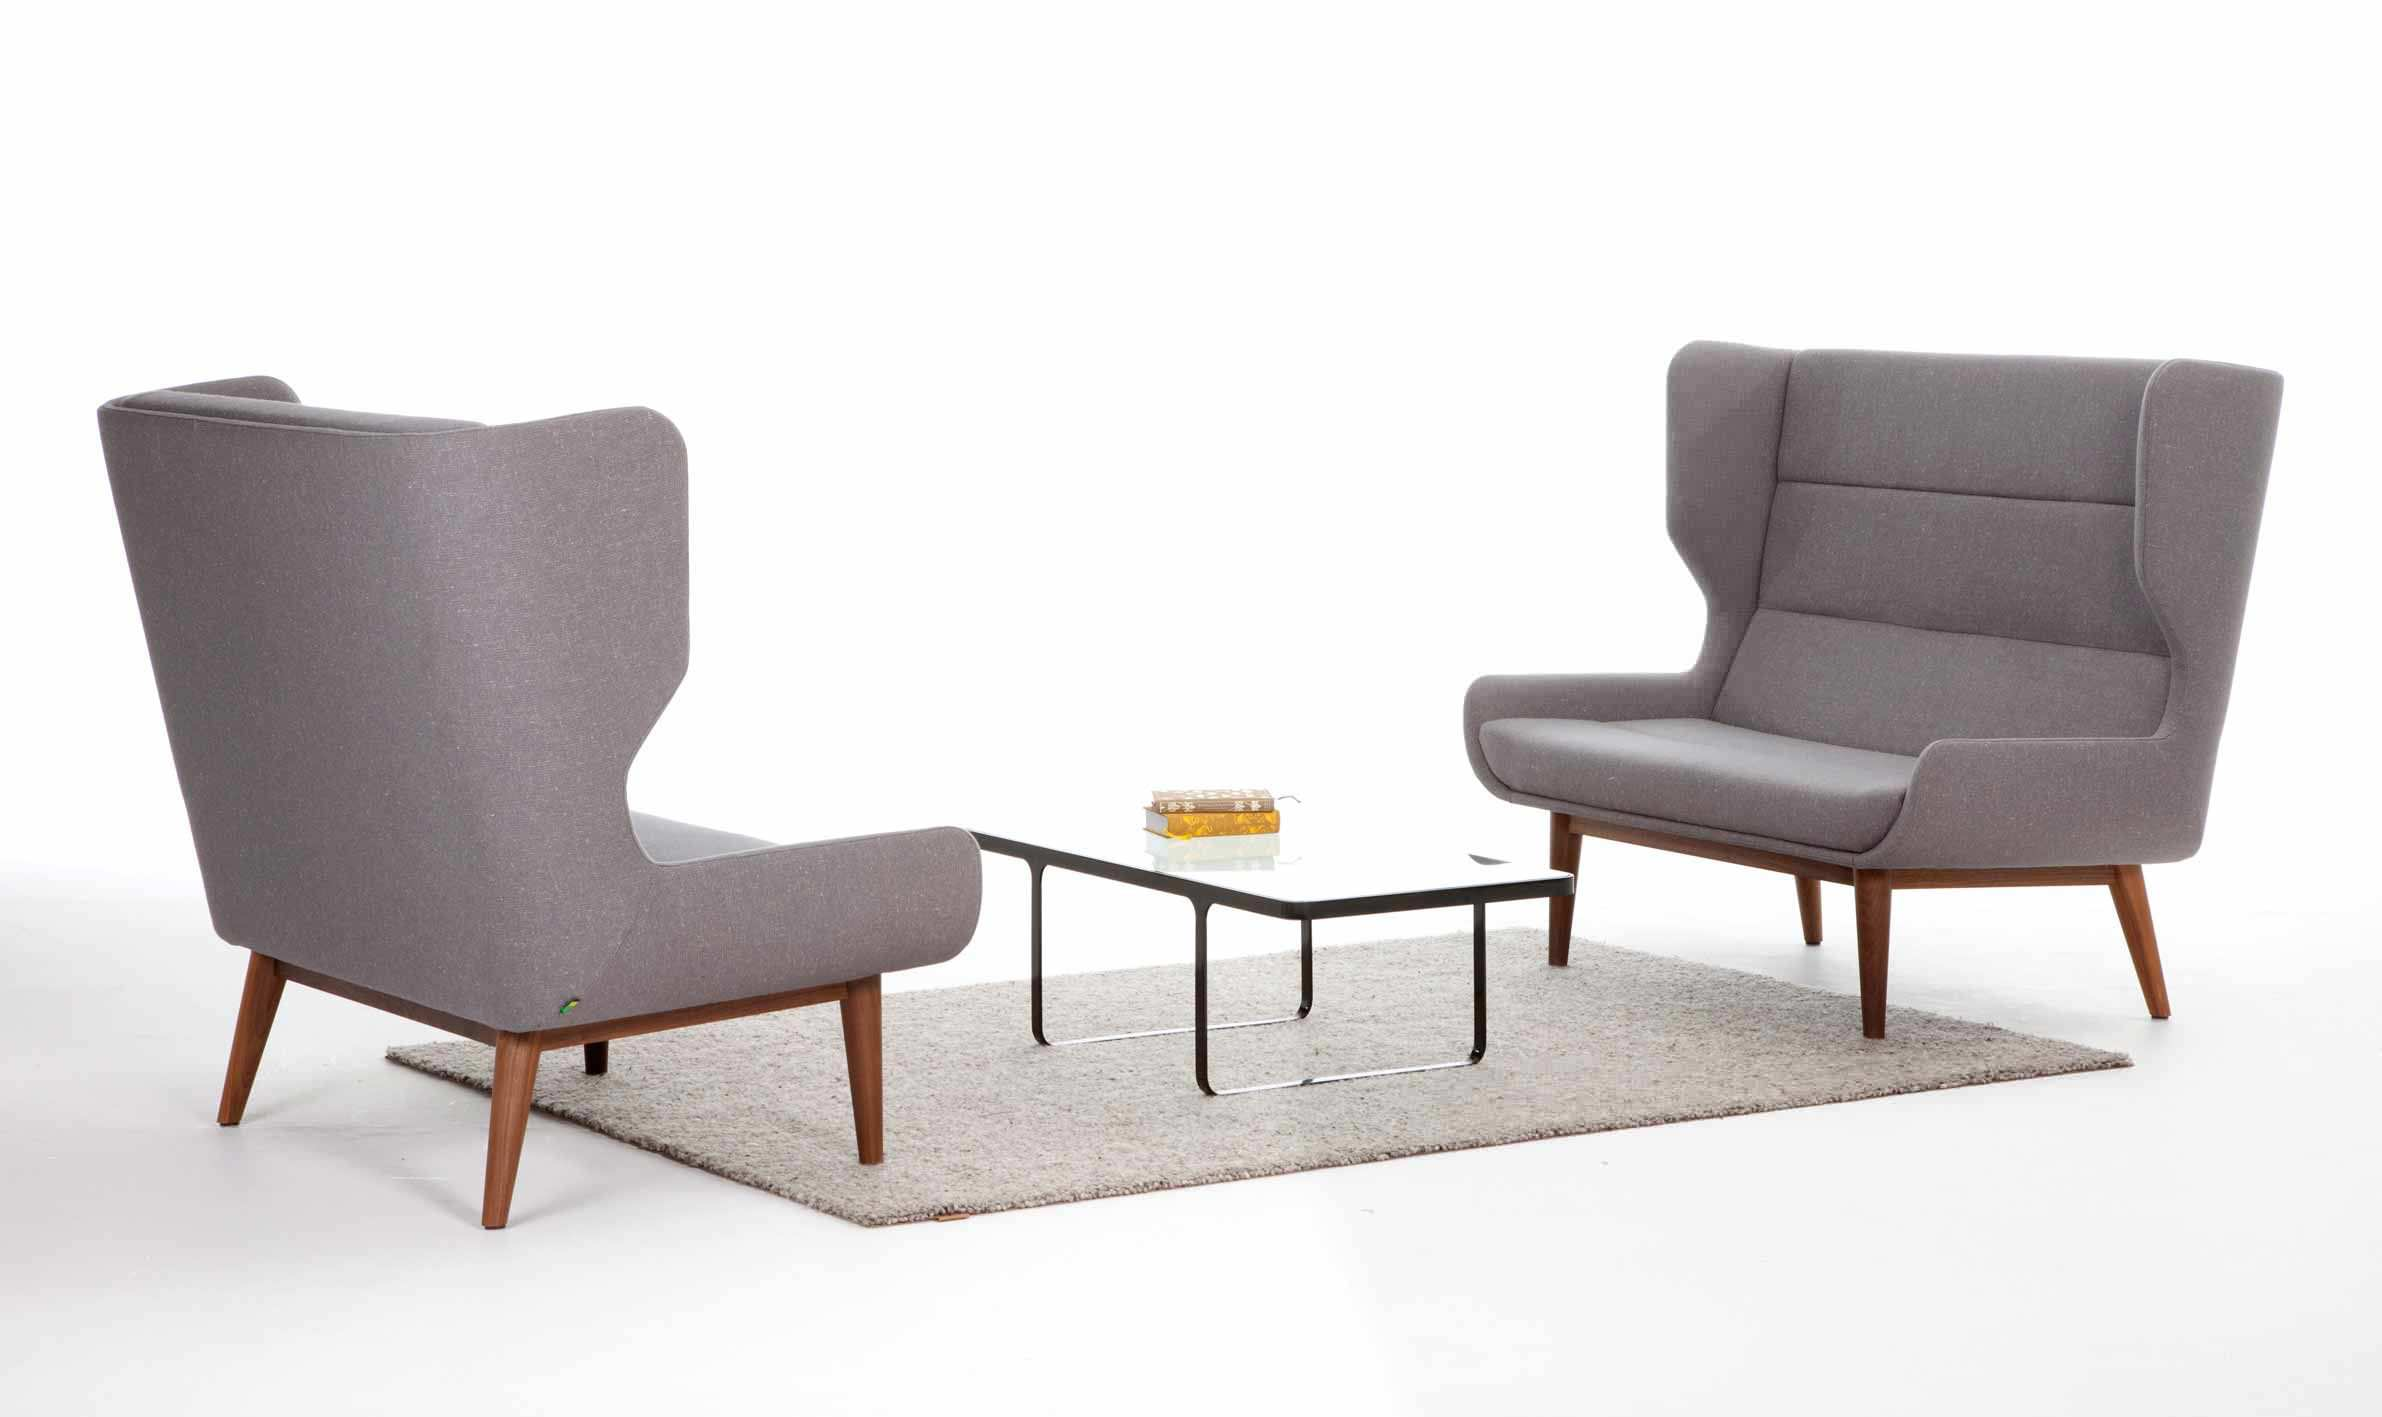 Contemporary sofa / steel / oak / commercial - HUSH - Naughtone